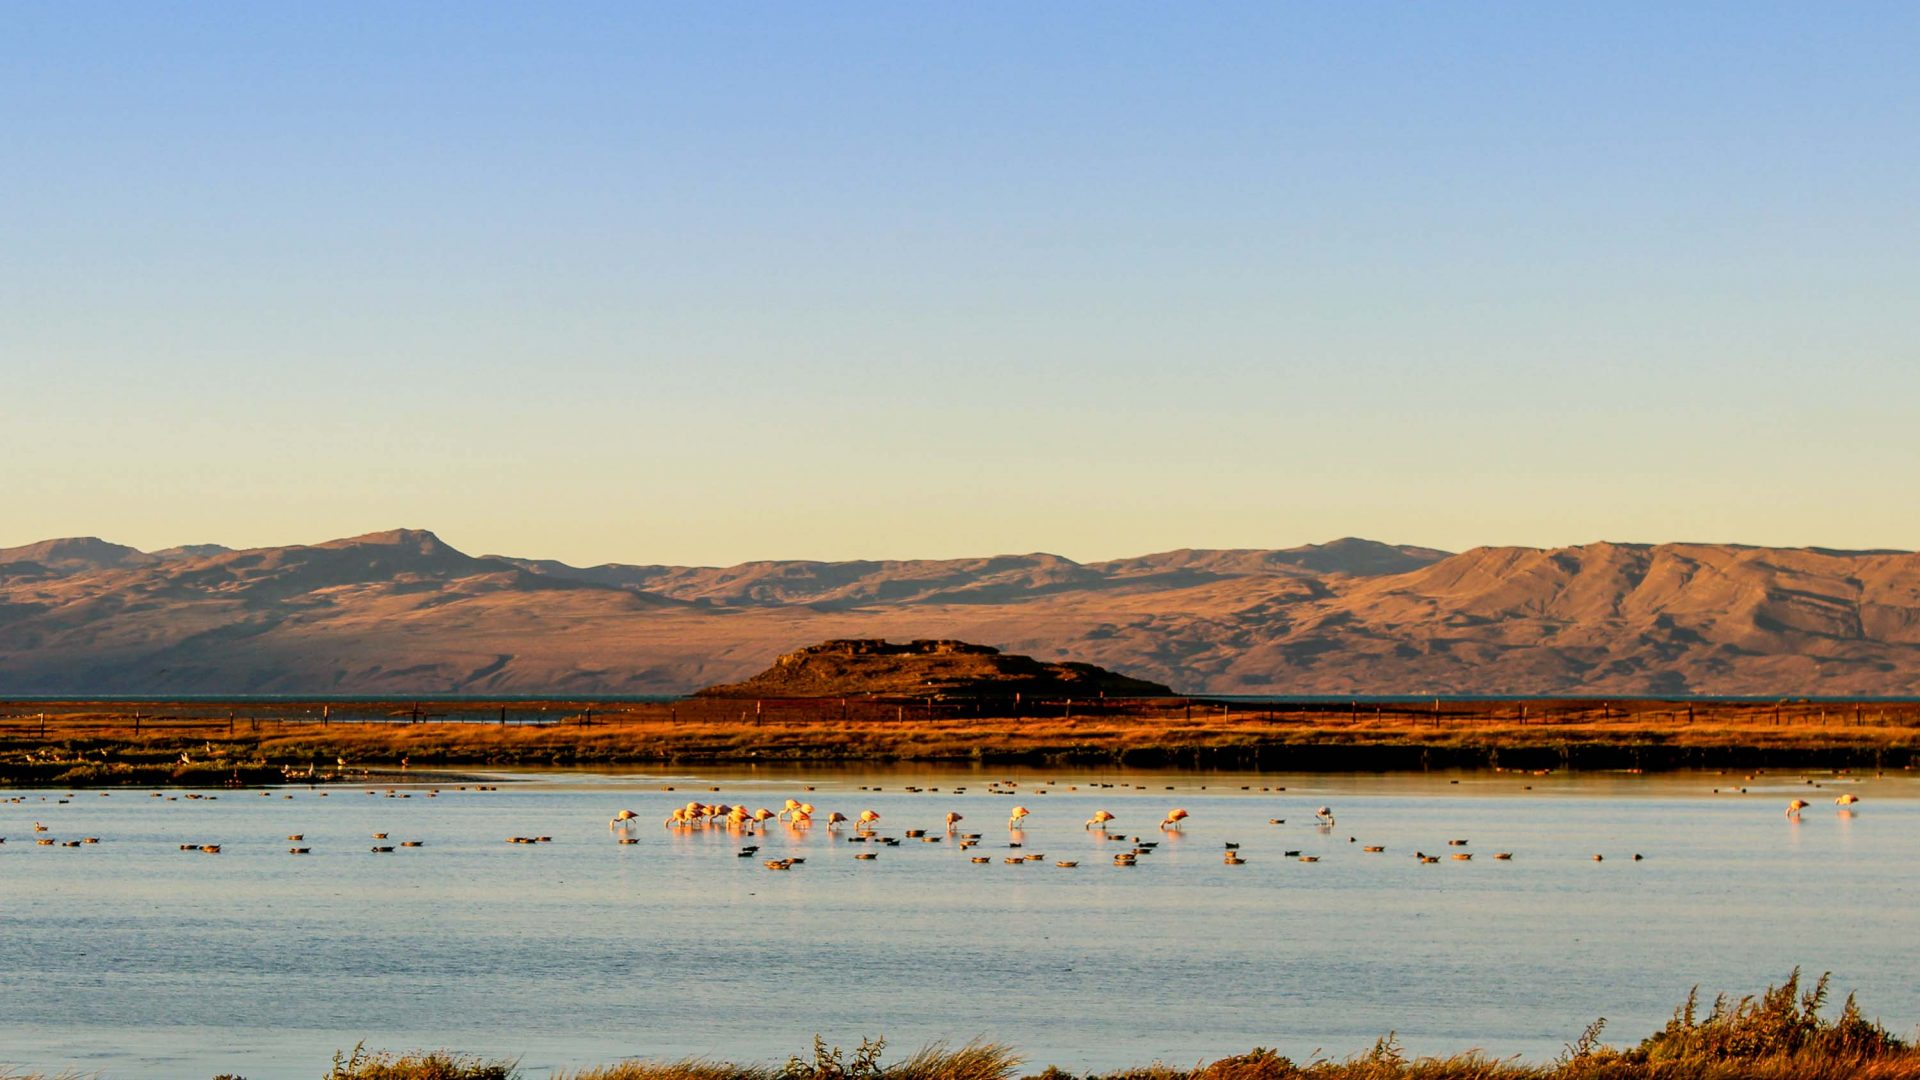 Flamingos near El Calafate, a town by the edge of the Southern Patagonian Ice Field.